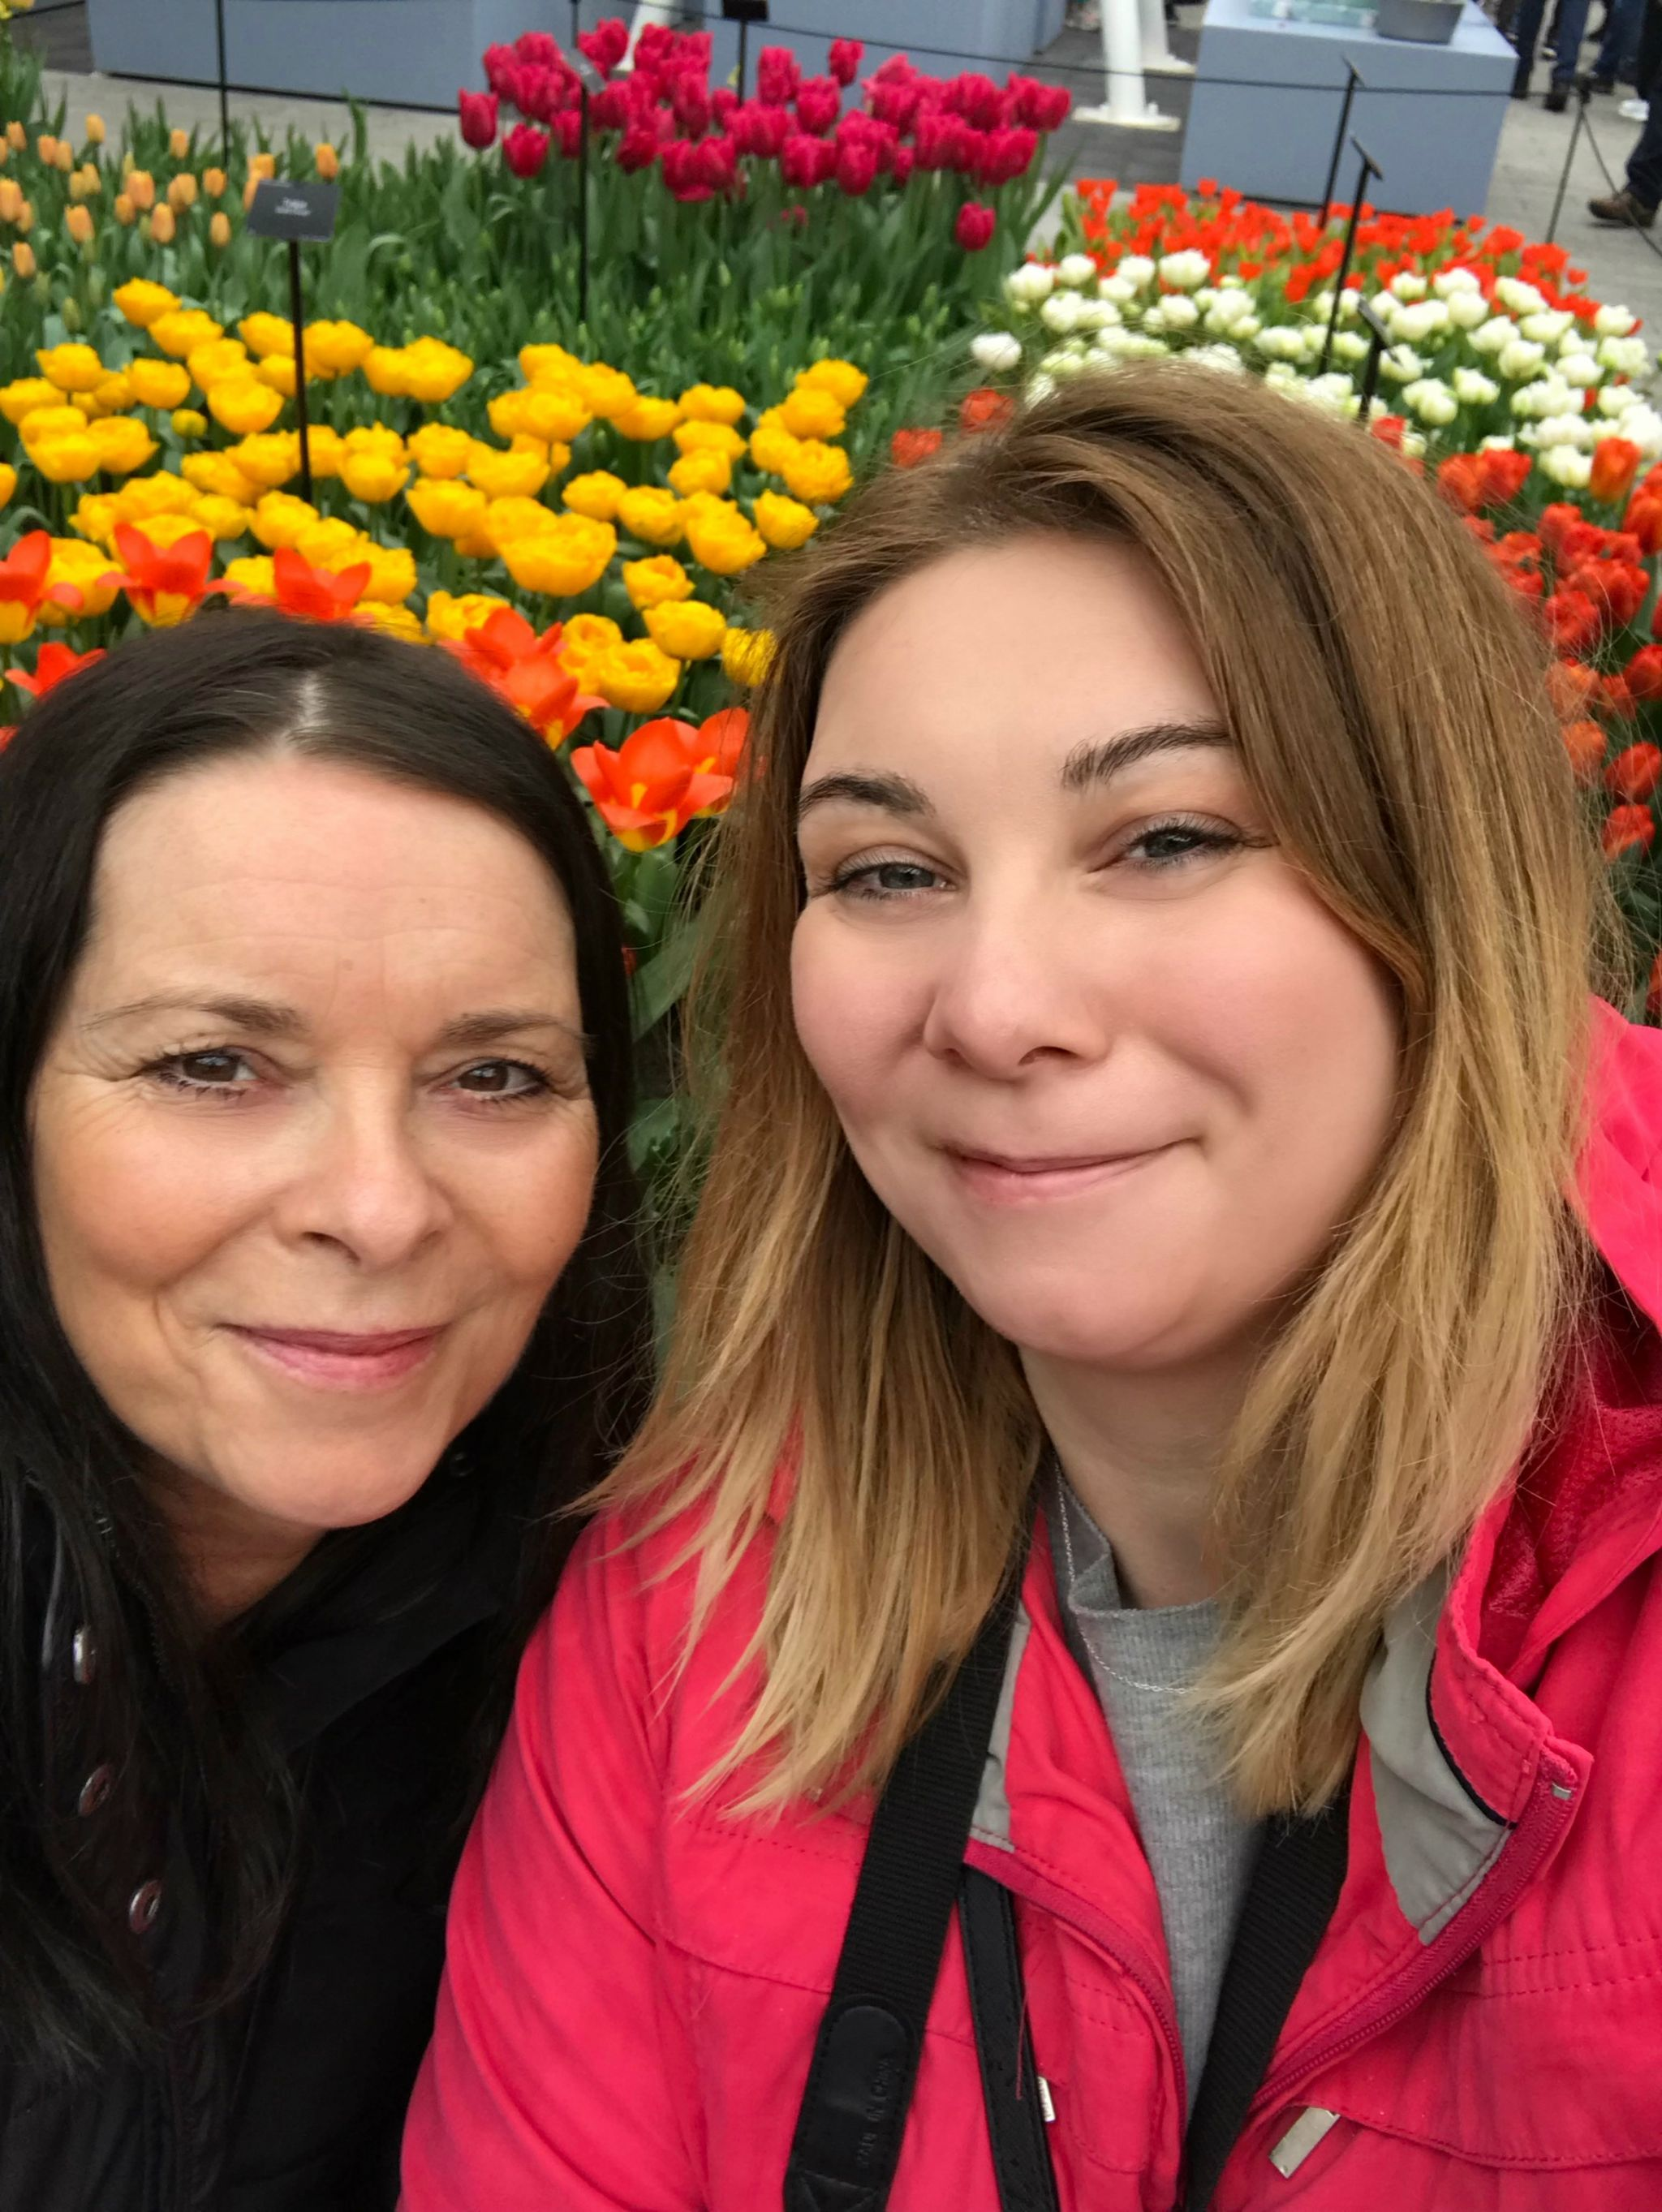 Me and Mum at Keukenhof